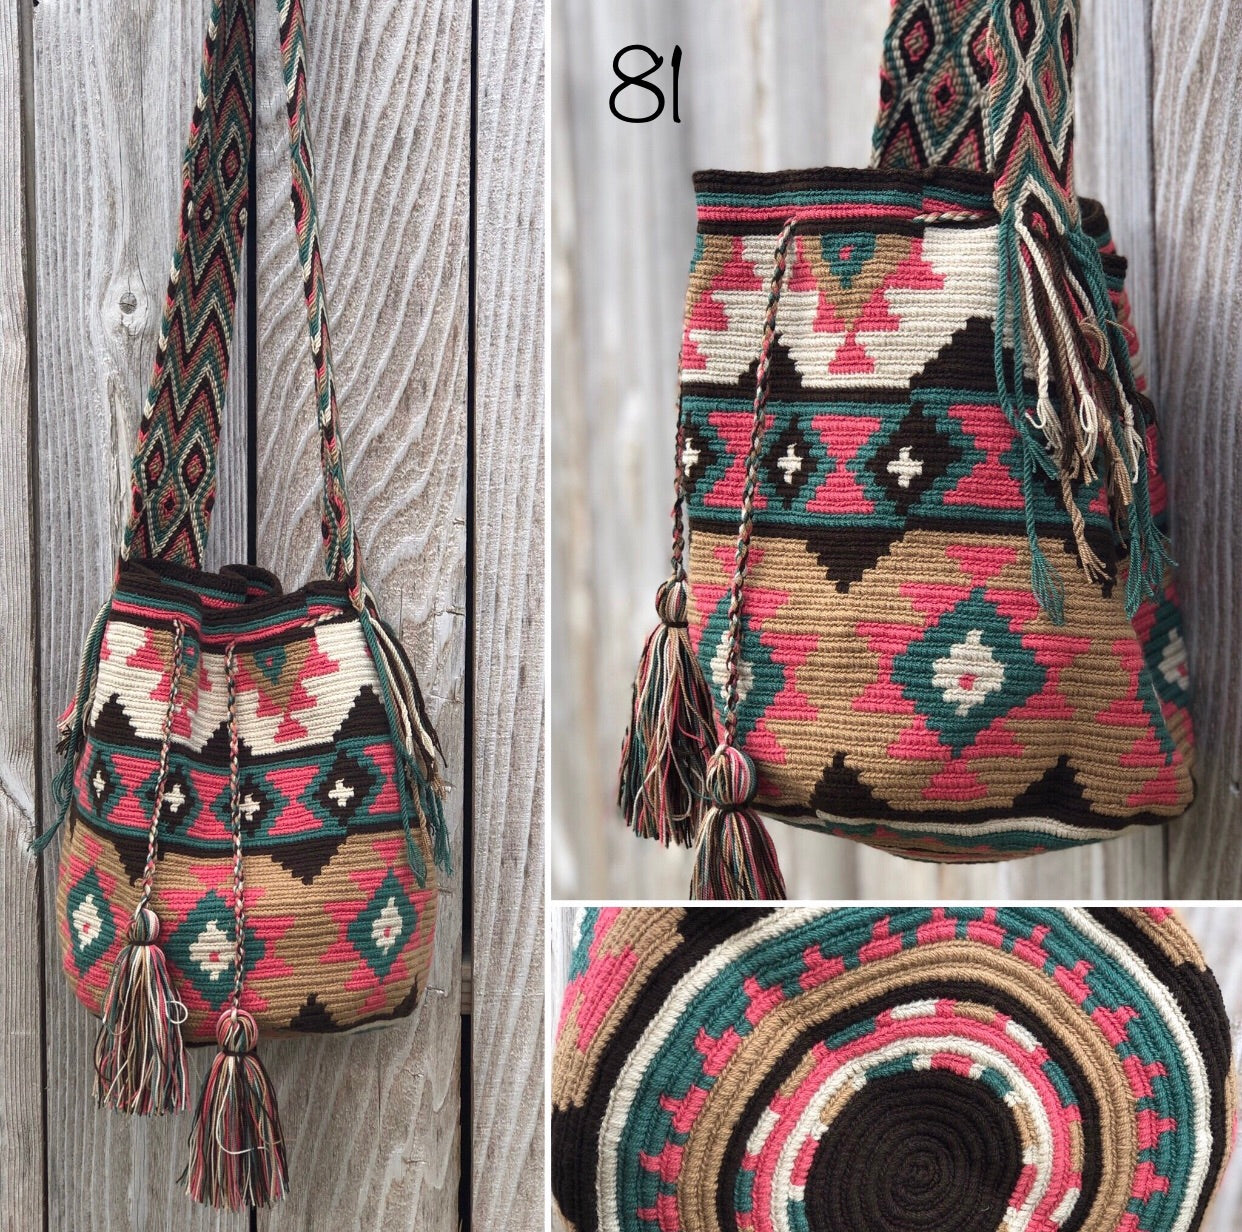 Colorful 4U | Desert Dreams Collection | Crossbody Boho Bags for Fall | Wayuu Mochila | Bohemian Bucket Bag 81